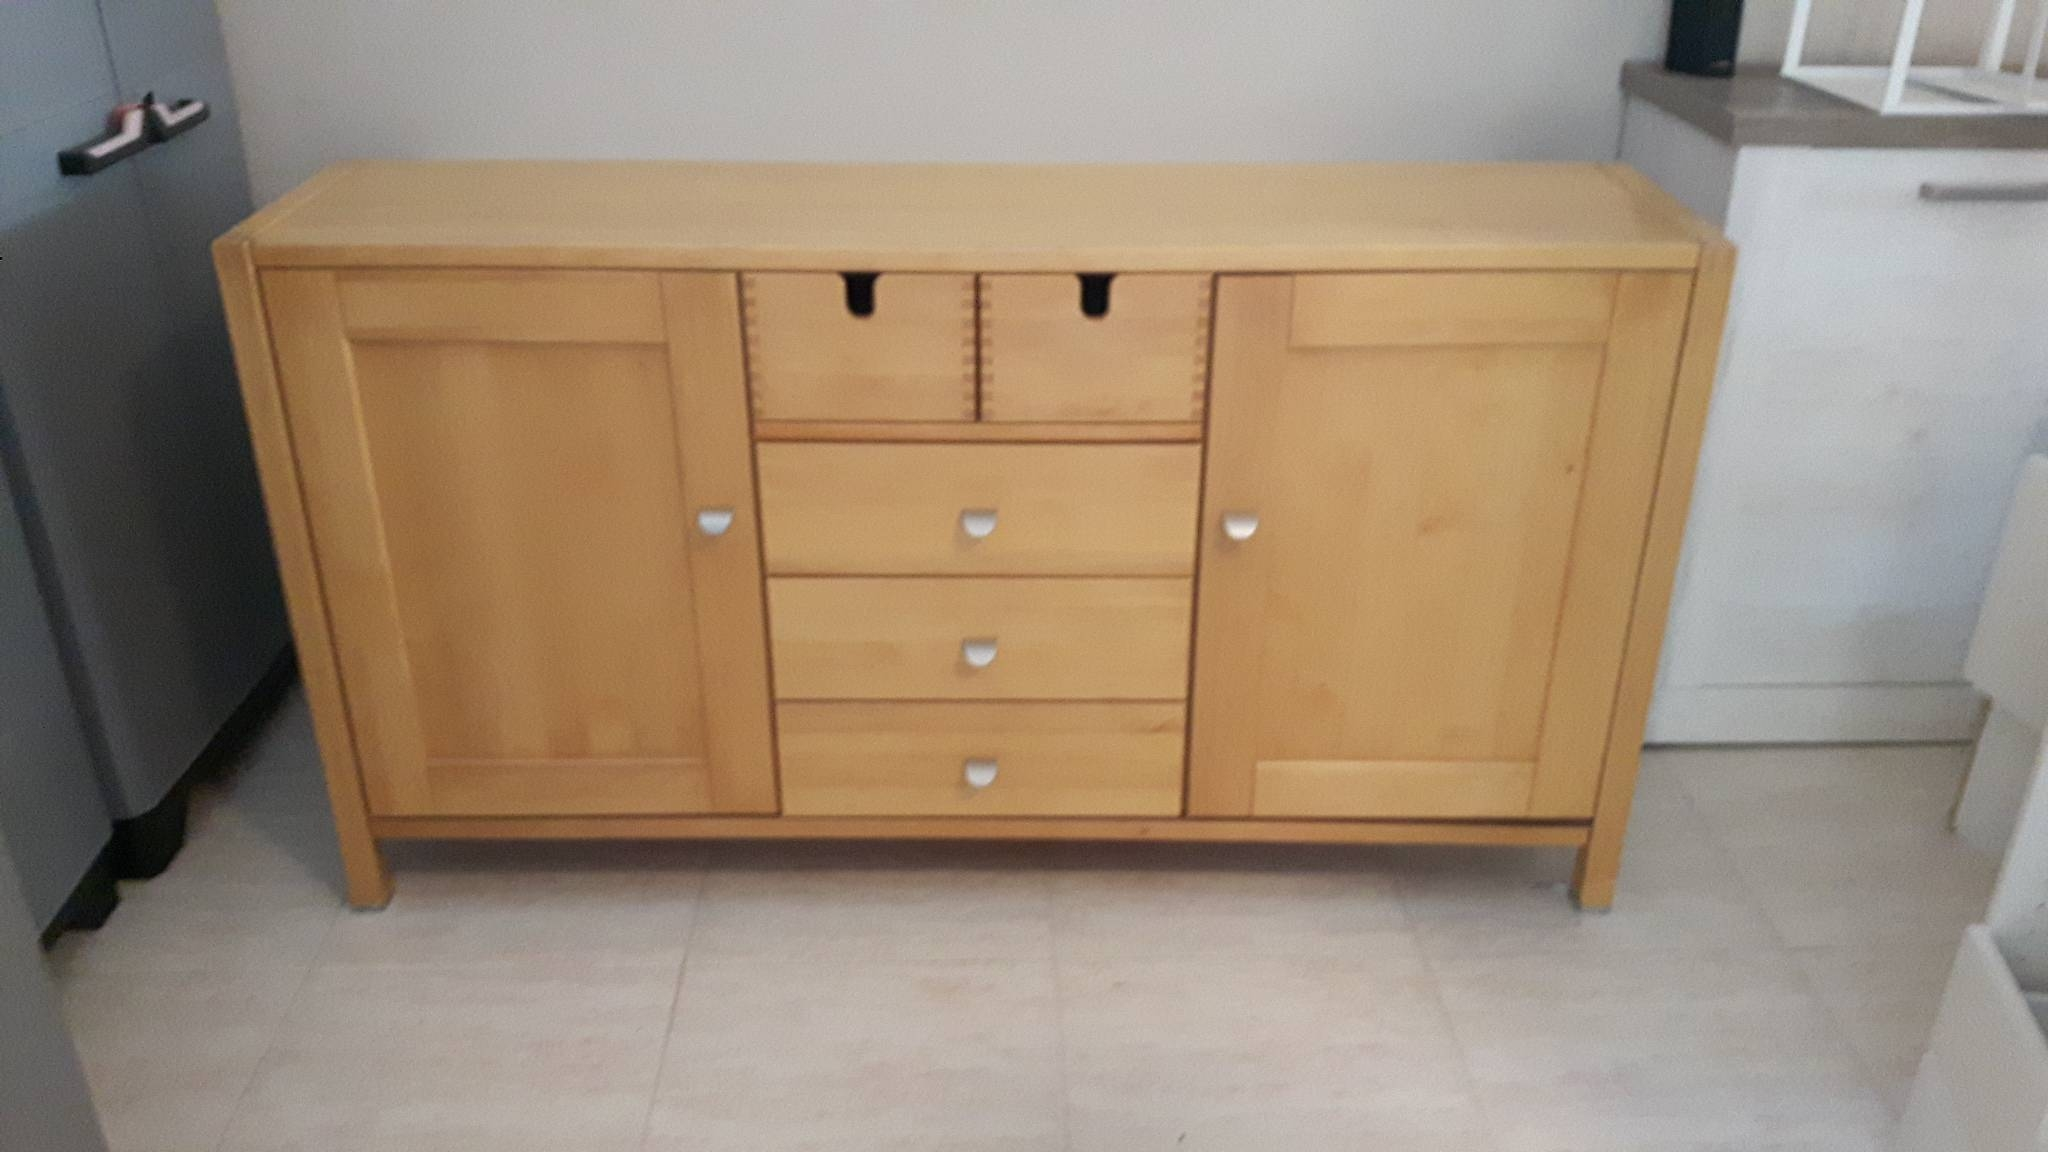 For Sale: Solid Oak Sideboard – Buy And Sell Items In Los Dolses Within Oak Sideboard For Sale (View 13 of 20)